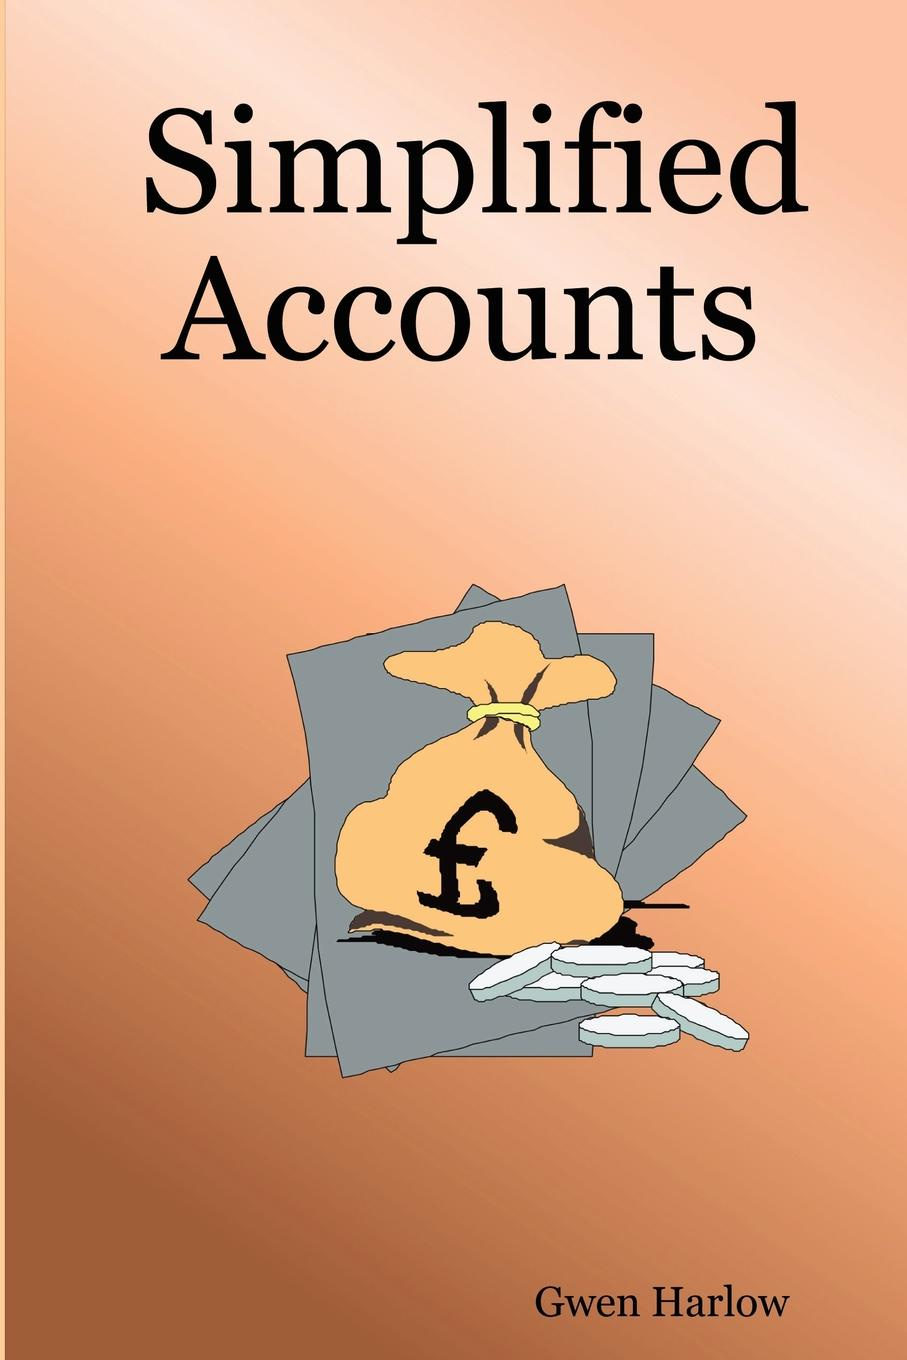 Gwen Harlow. Simplified Accounts